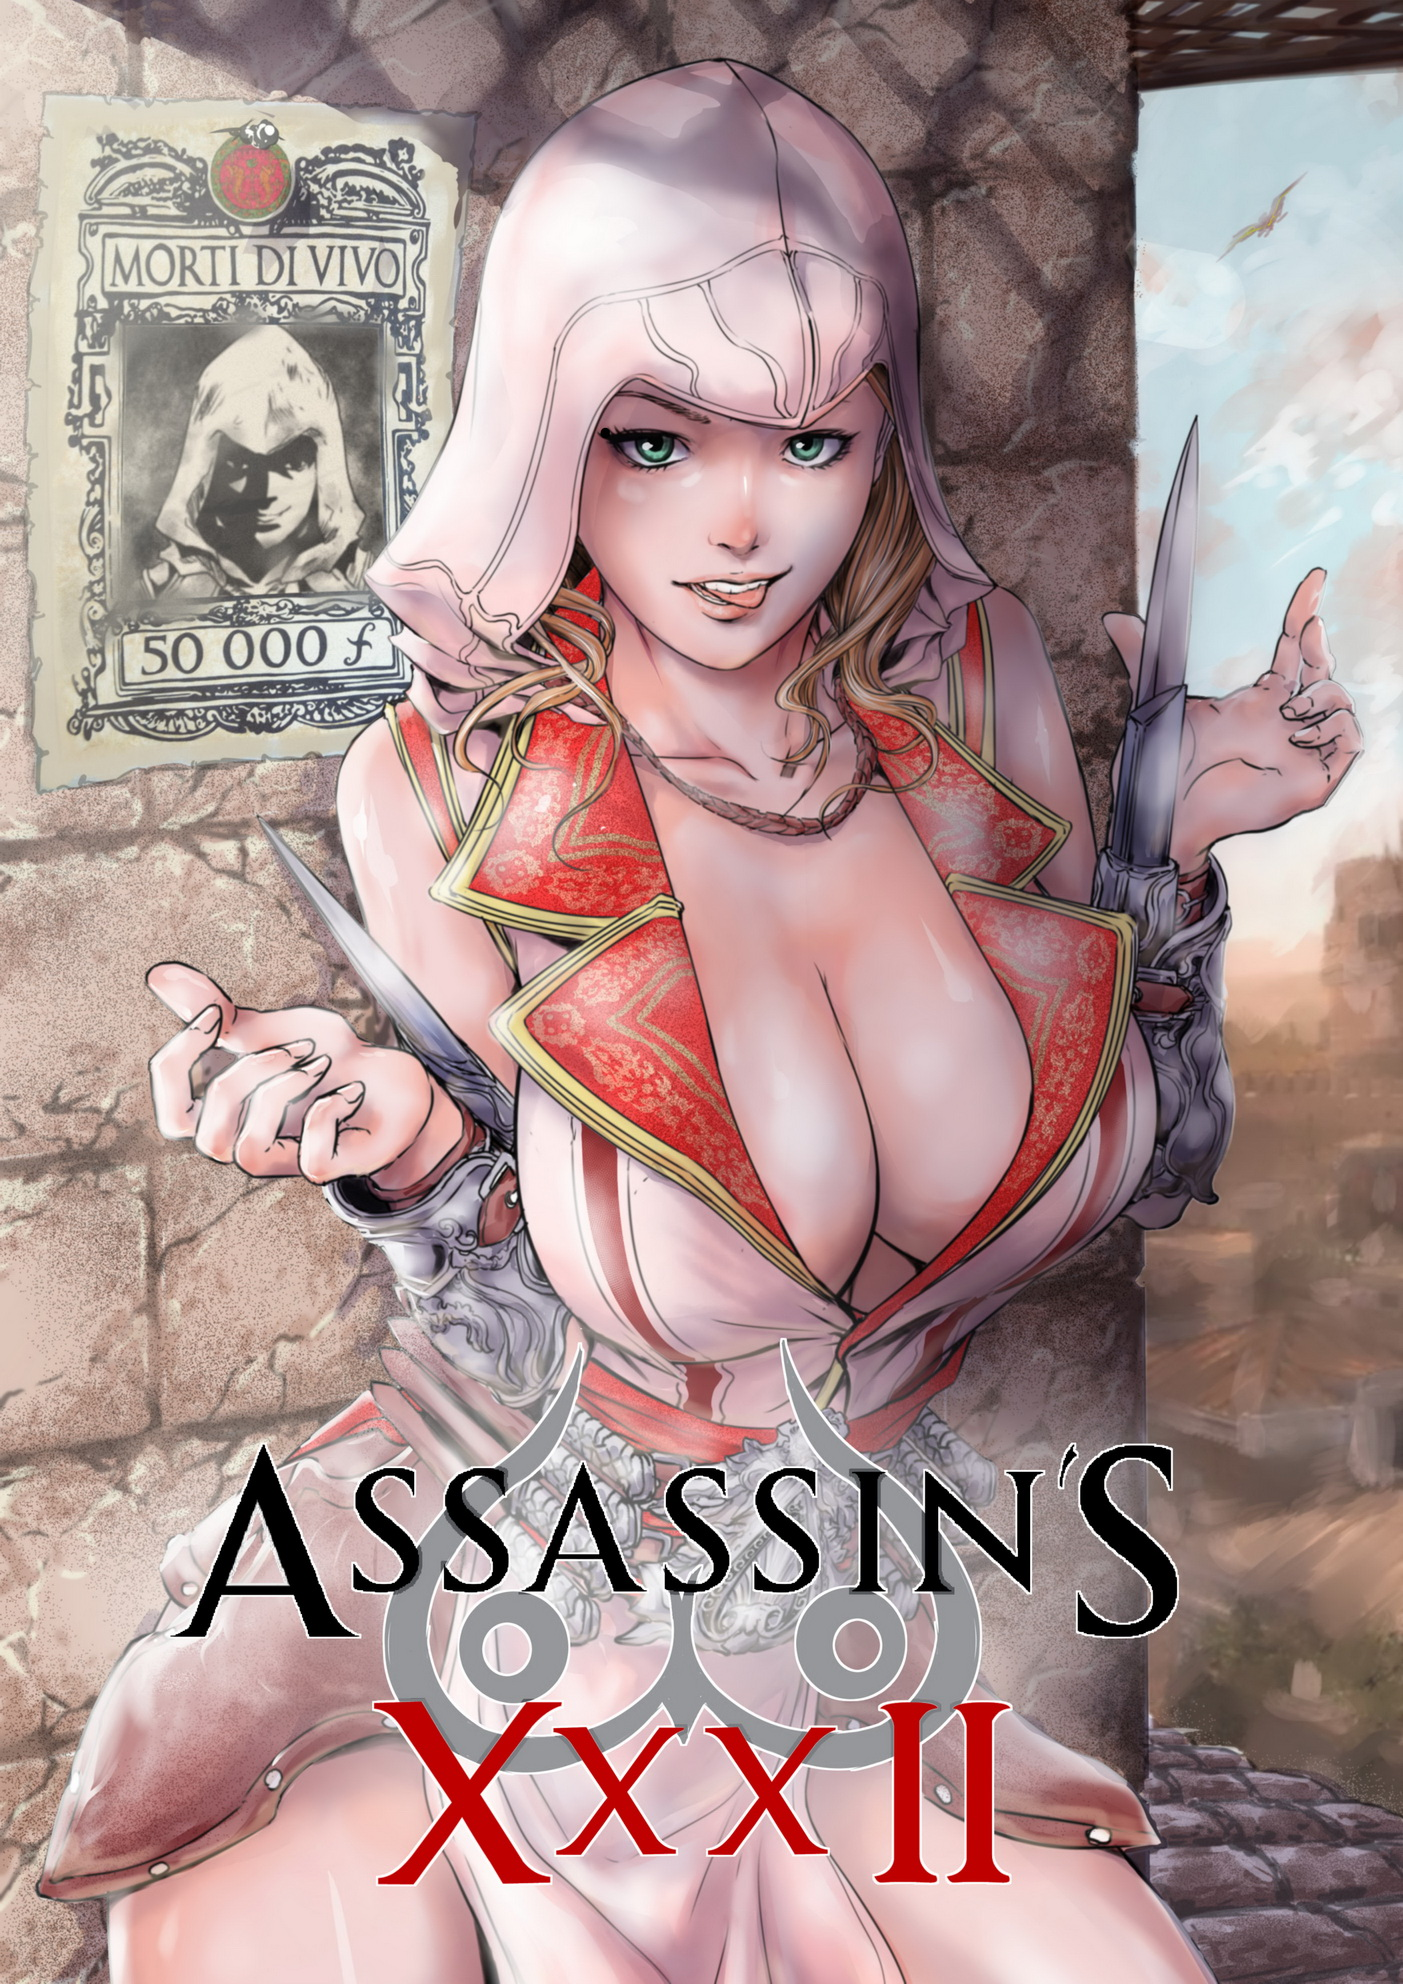 Assassin's creed naked girl erotic movies